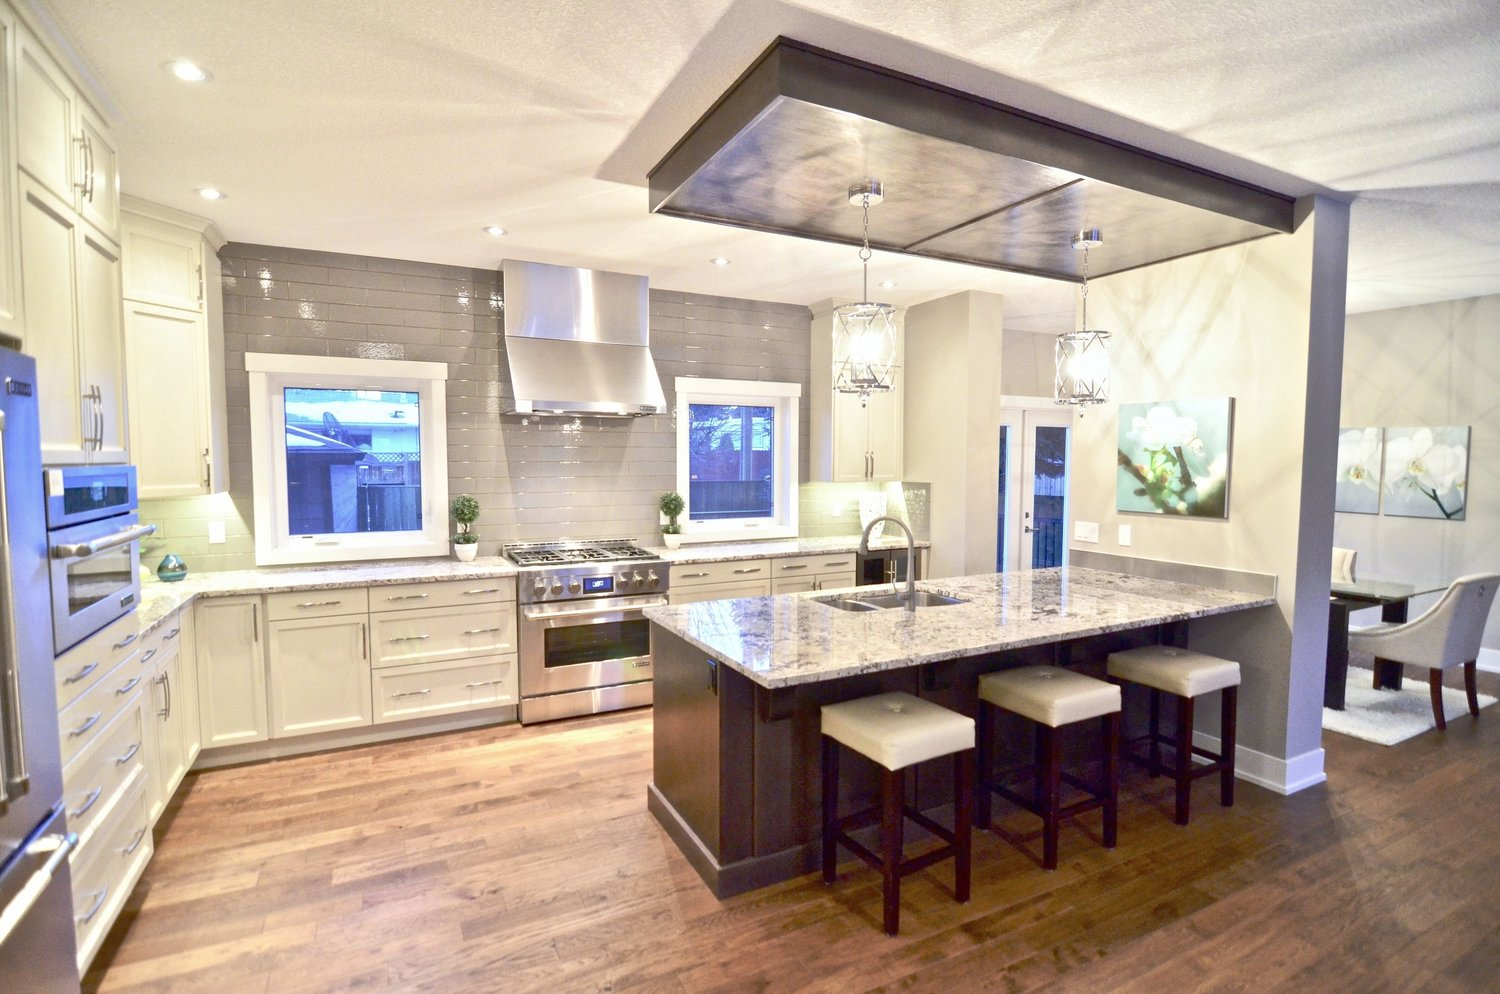 Why It Is Important To Renovate Your Kitchen?